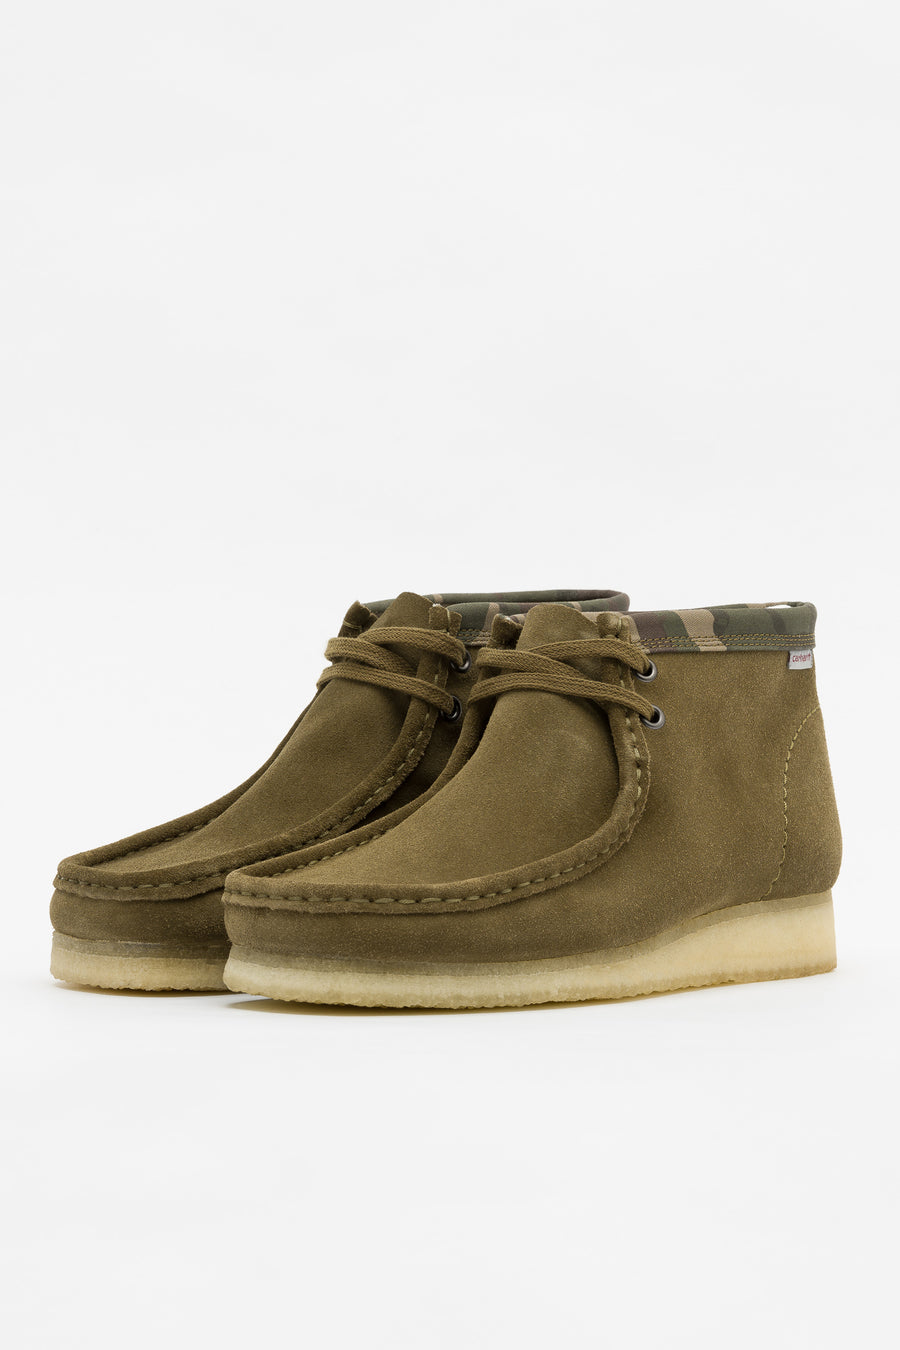 Clarks Carhartt WIP Wallabee Boot in Olive Camo - Notre